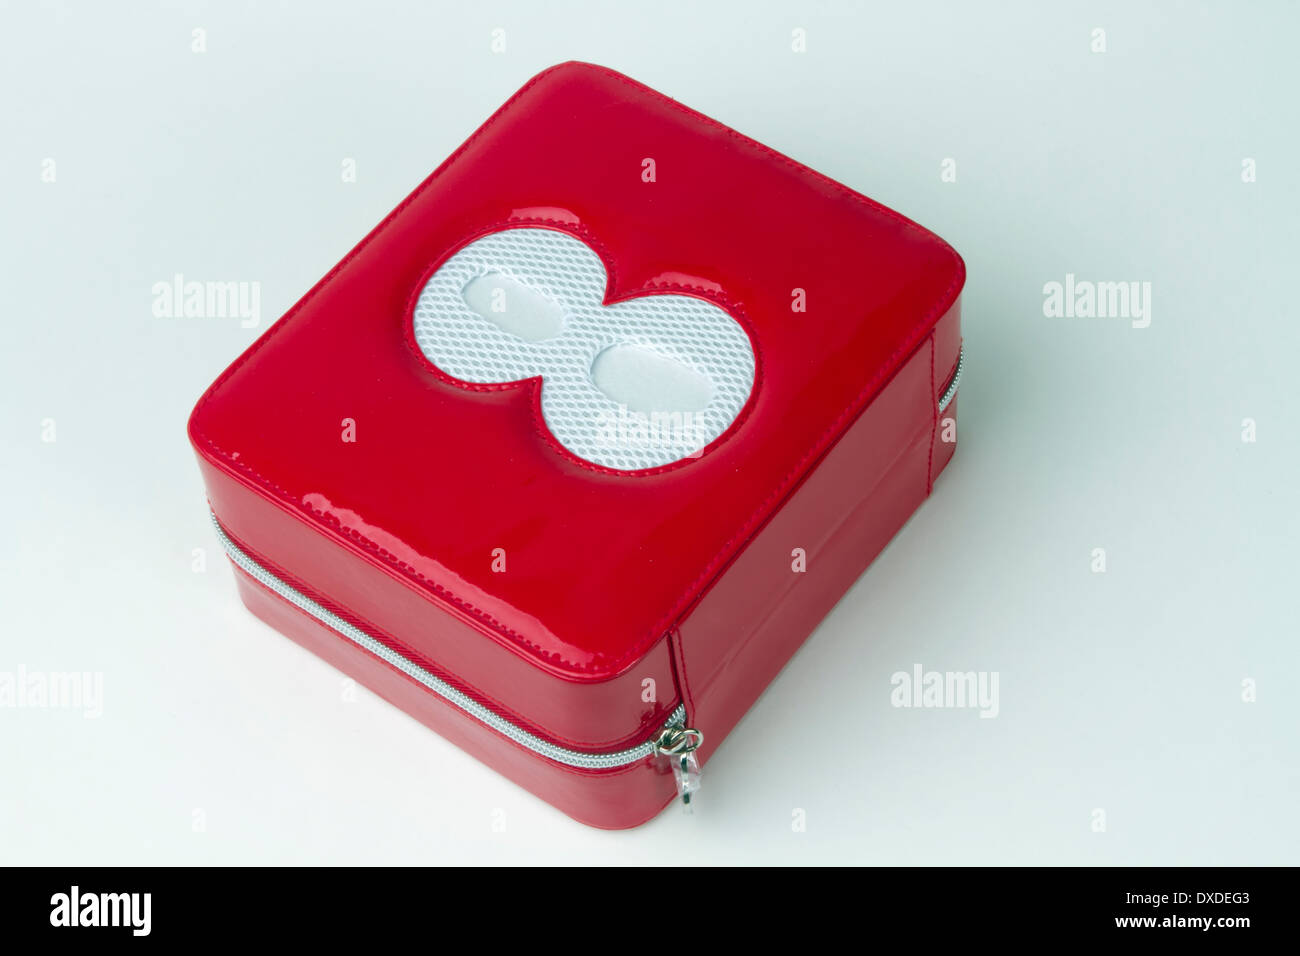 Red plastic zipped make up box with the figure eight etched in its